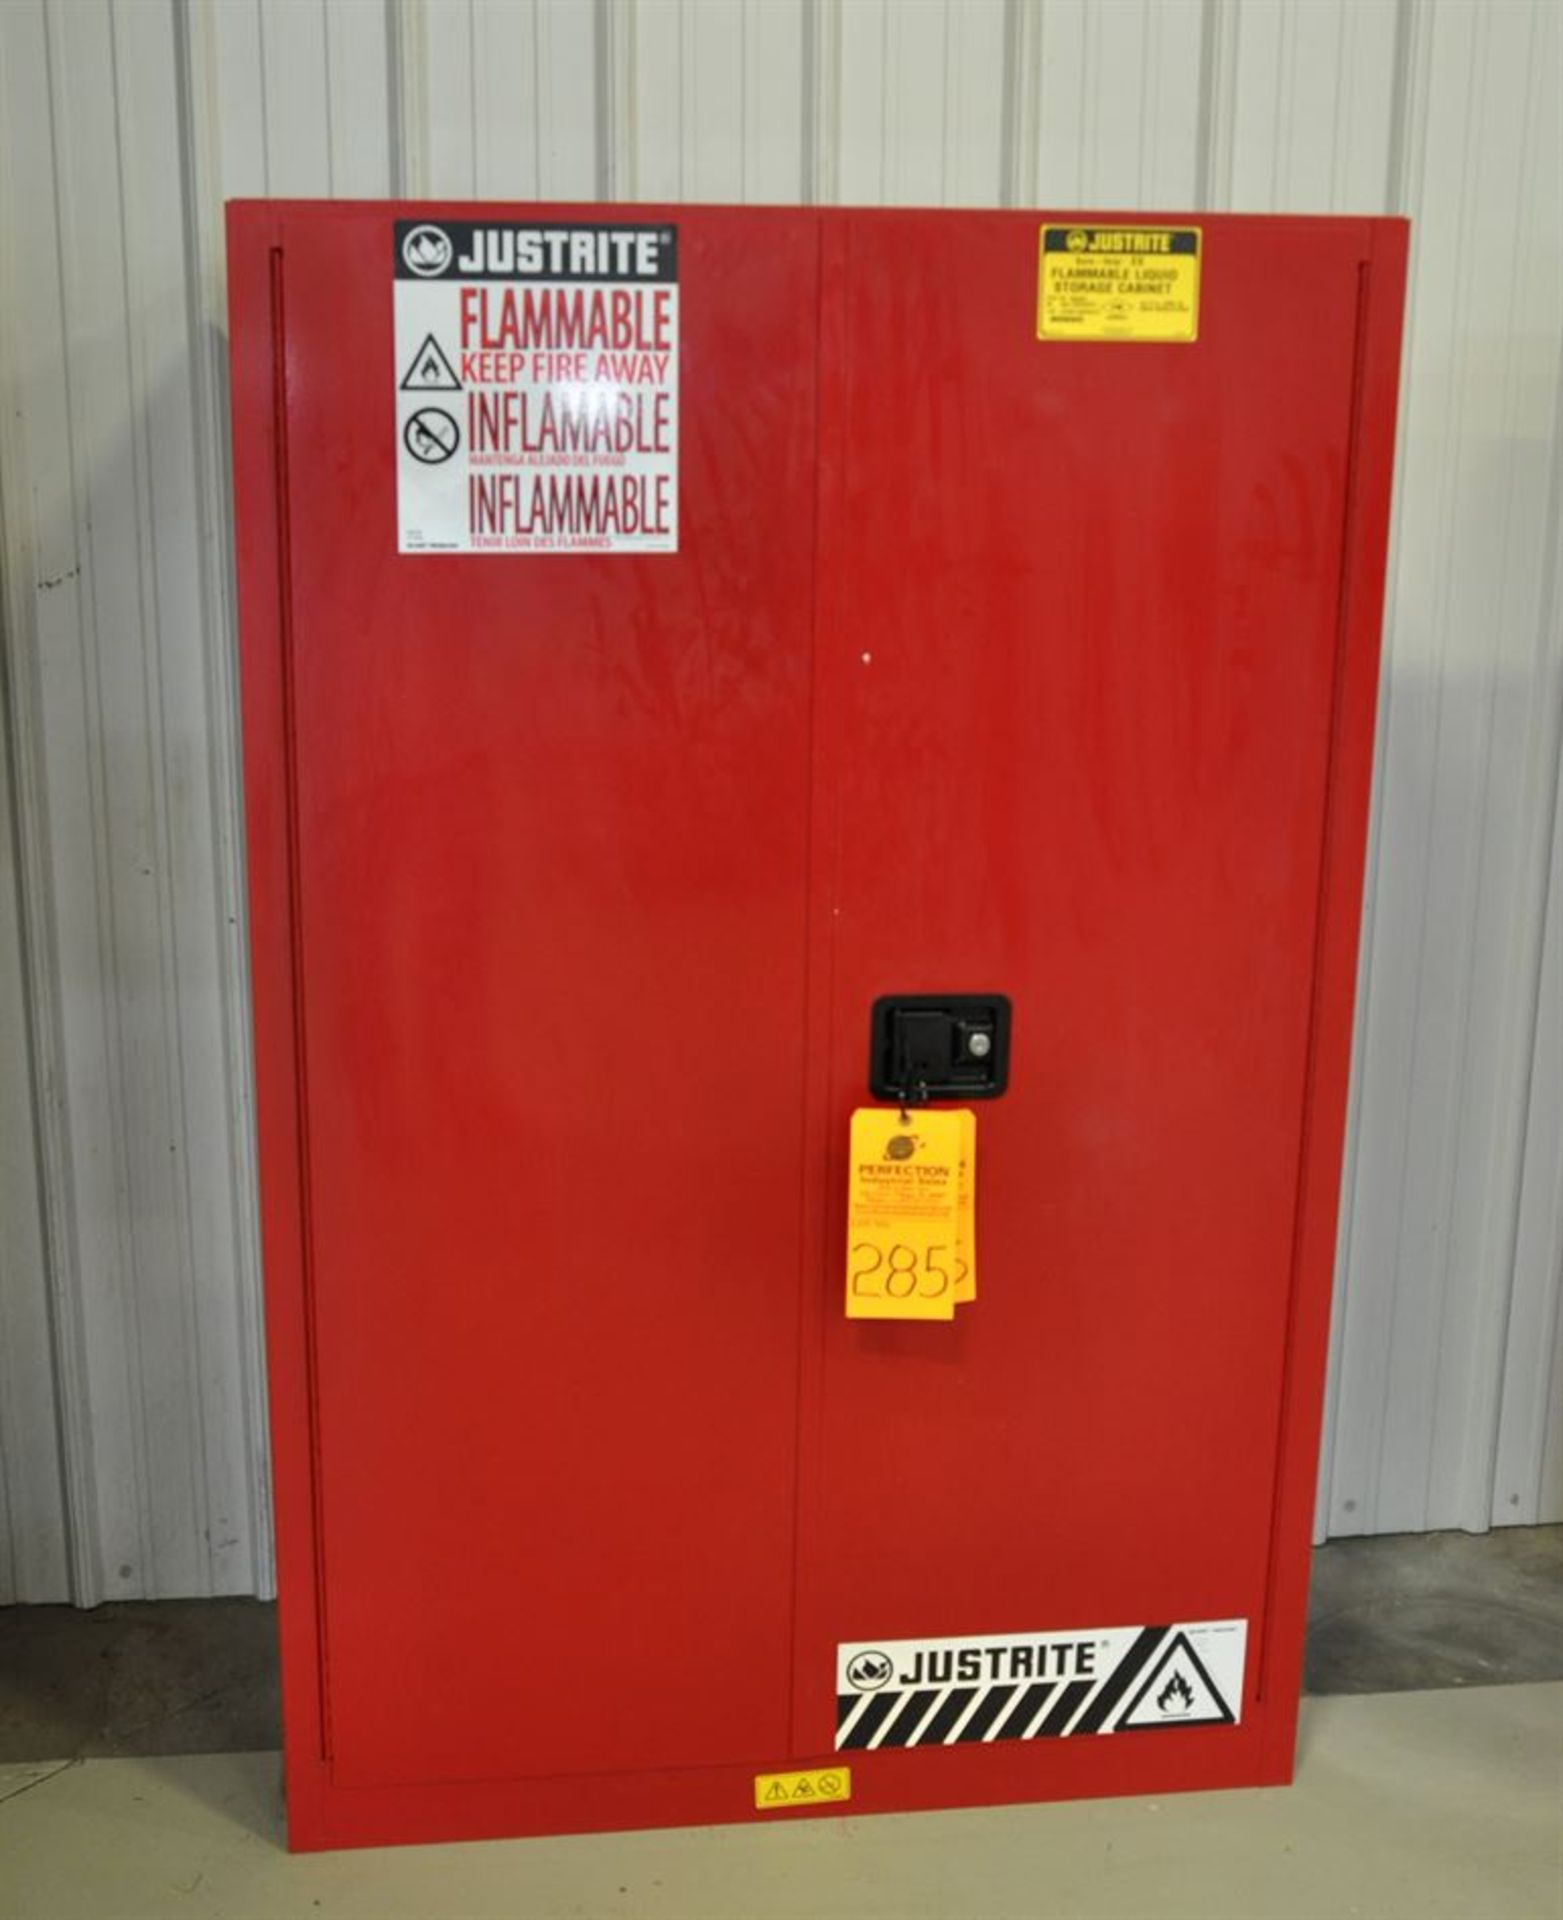 Flammable Materials Storage Cabinets, excluding contents